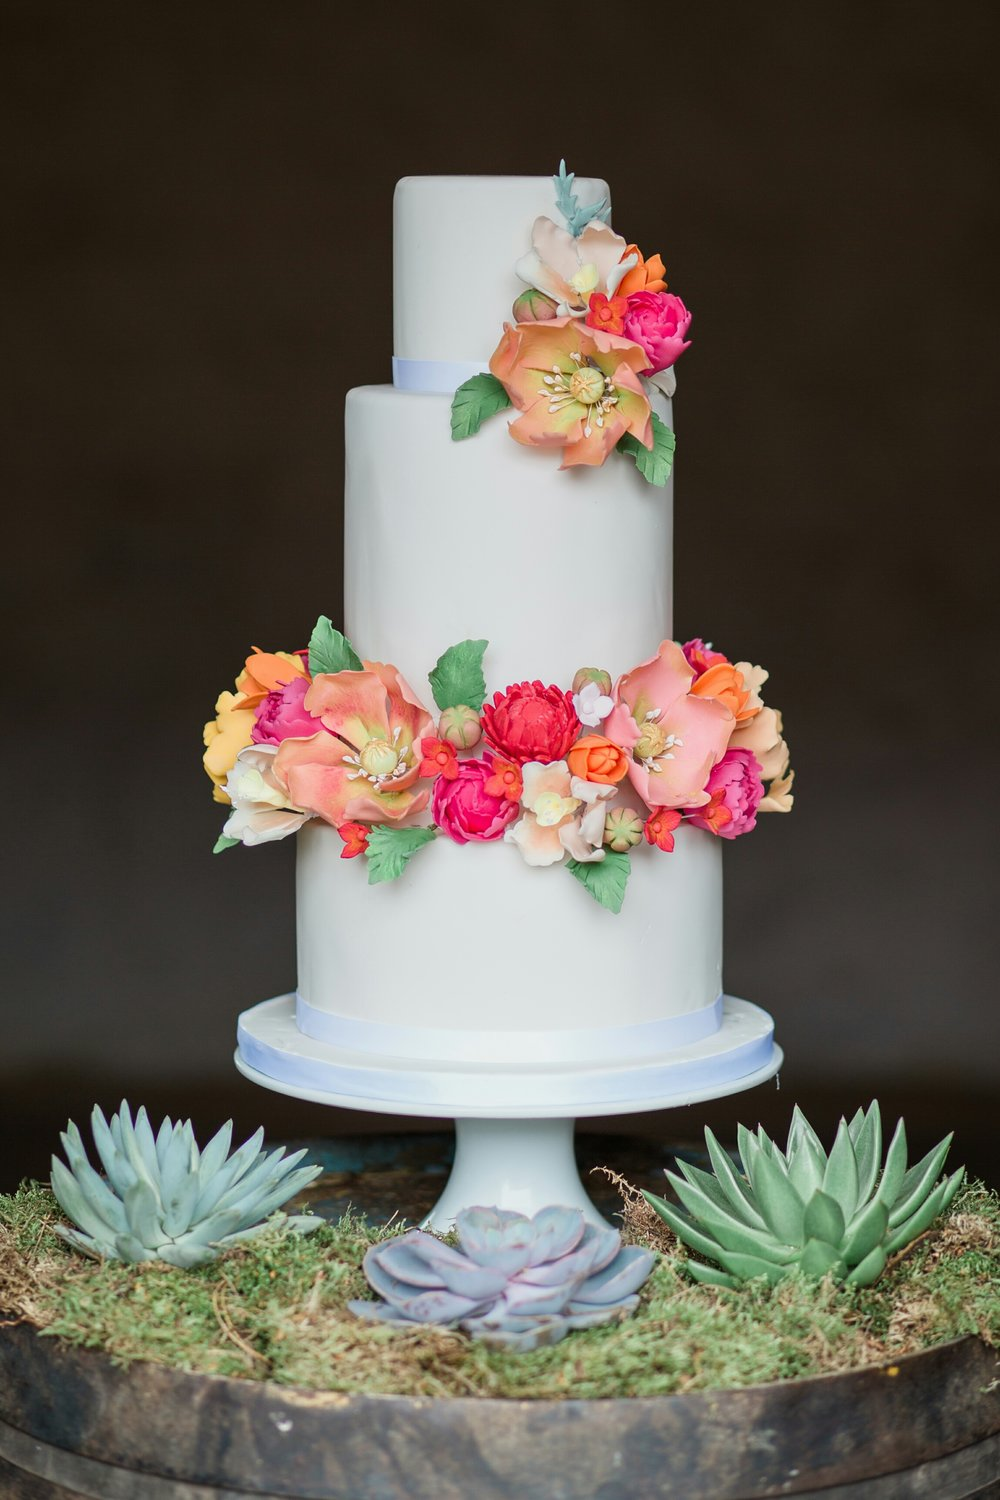 This cake was especially created for the shoot, and all the flowers here are made from sugar.